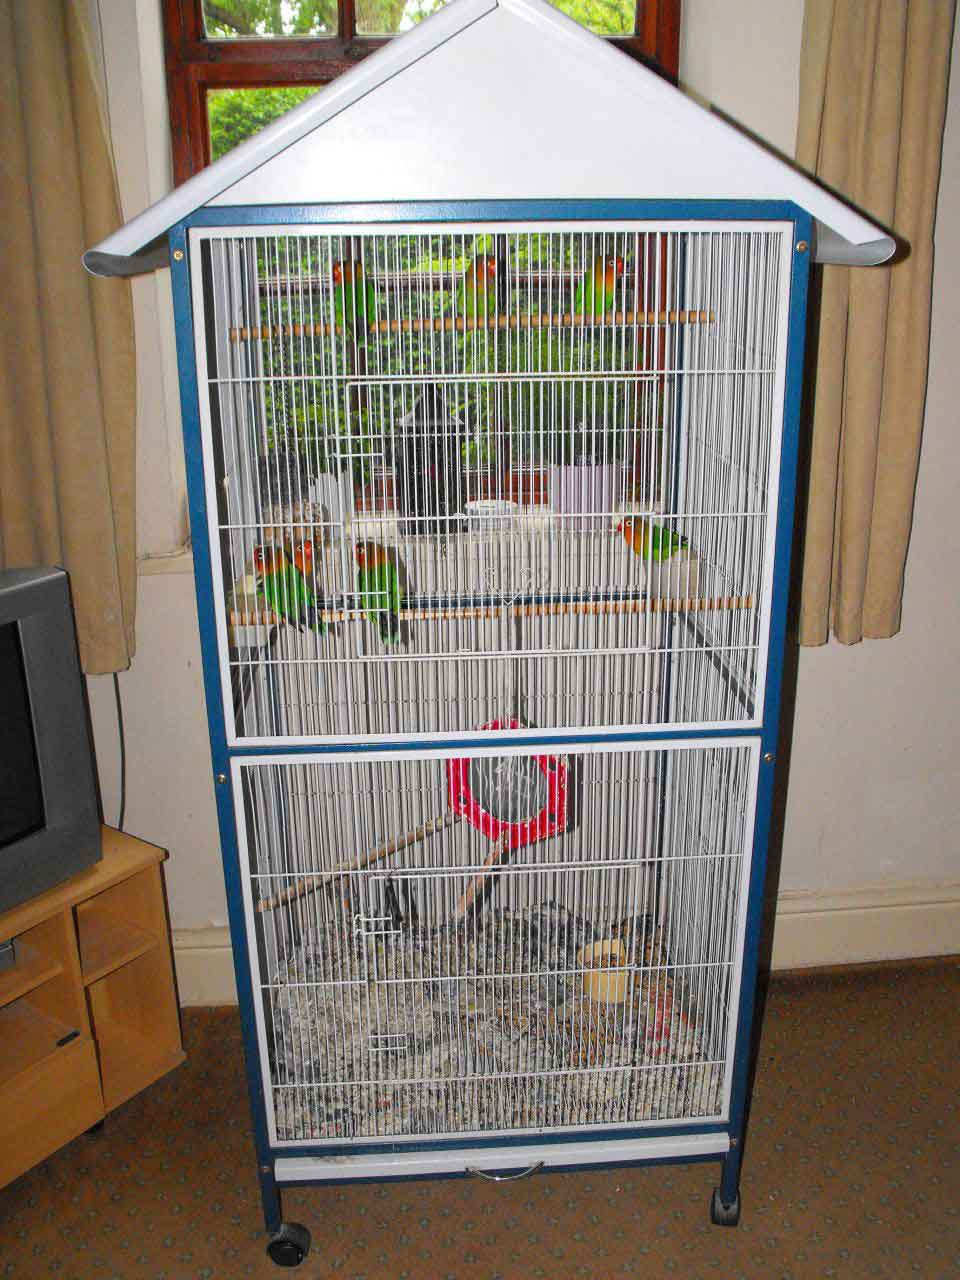 How to take proper care of your love birds image